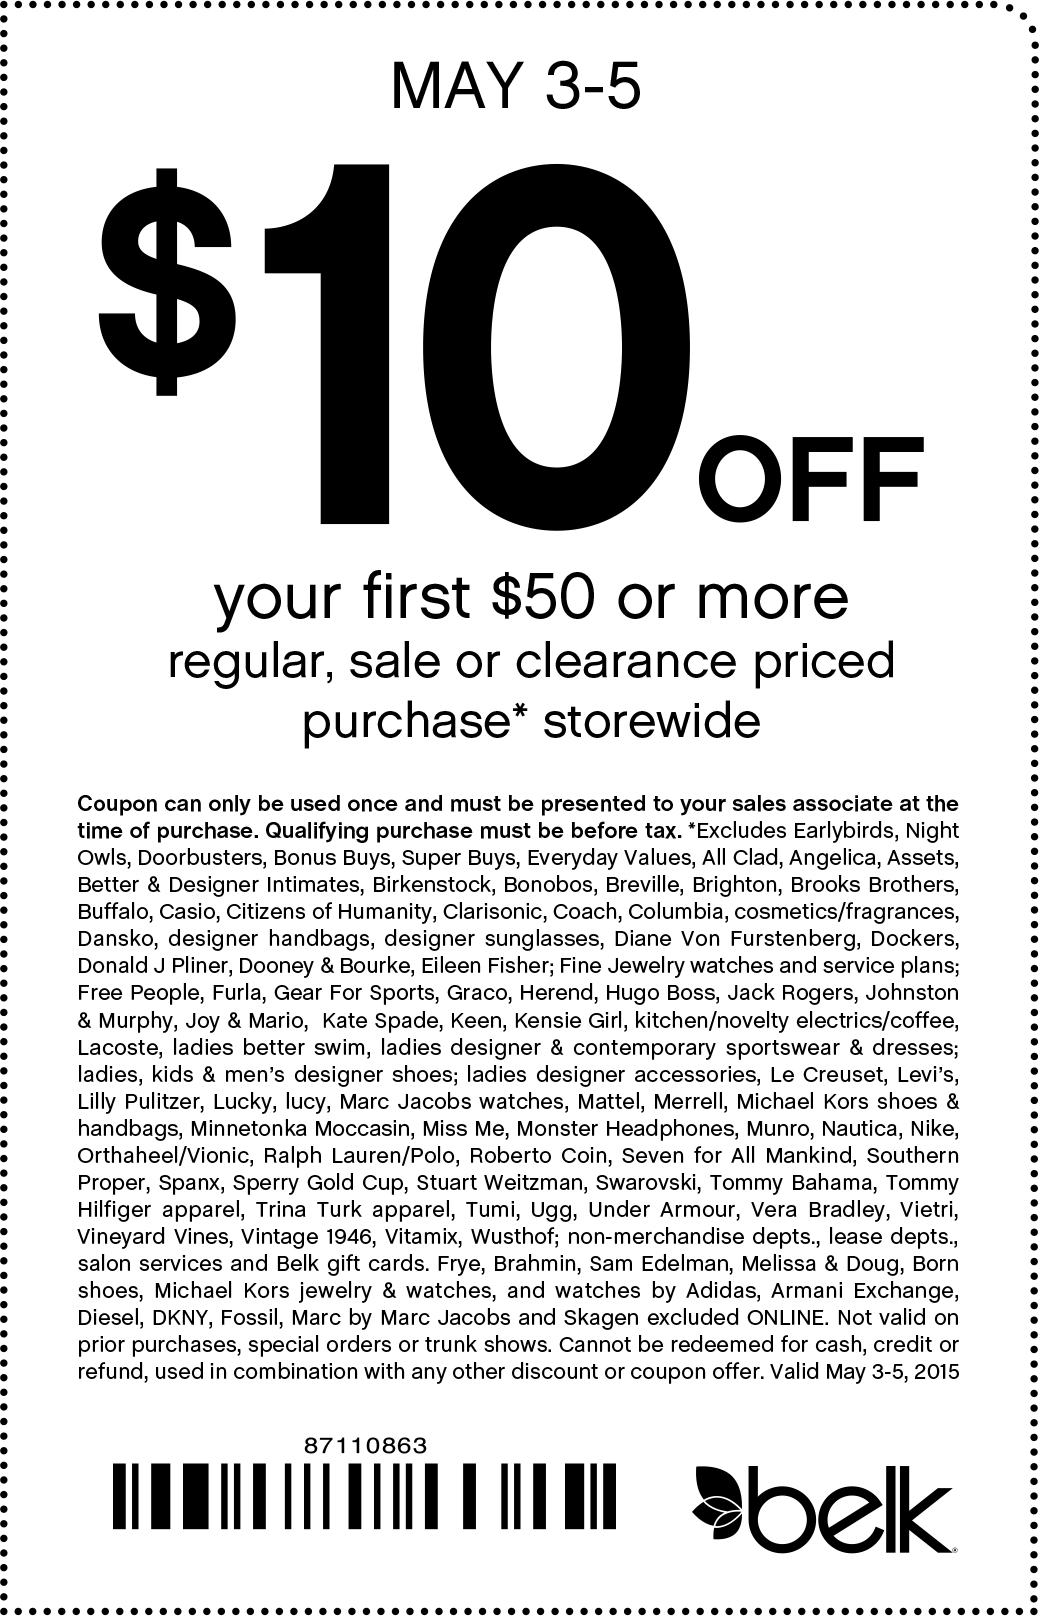 Belk Coupon October 2016 $10 off $50 at Belk, or online via promo code 87110863